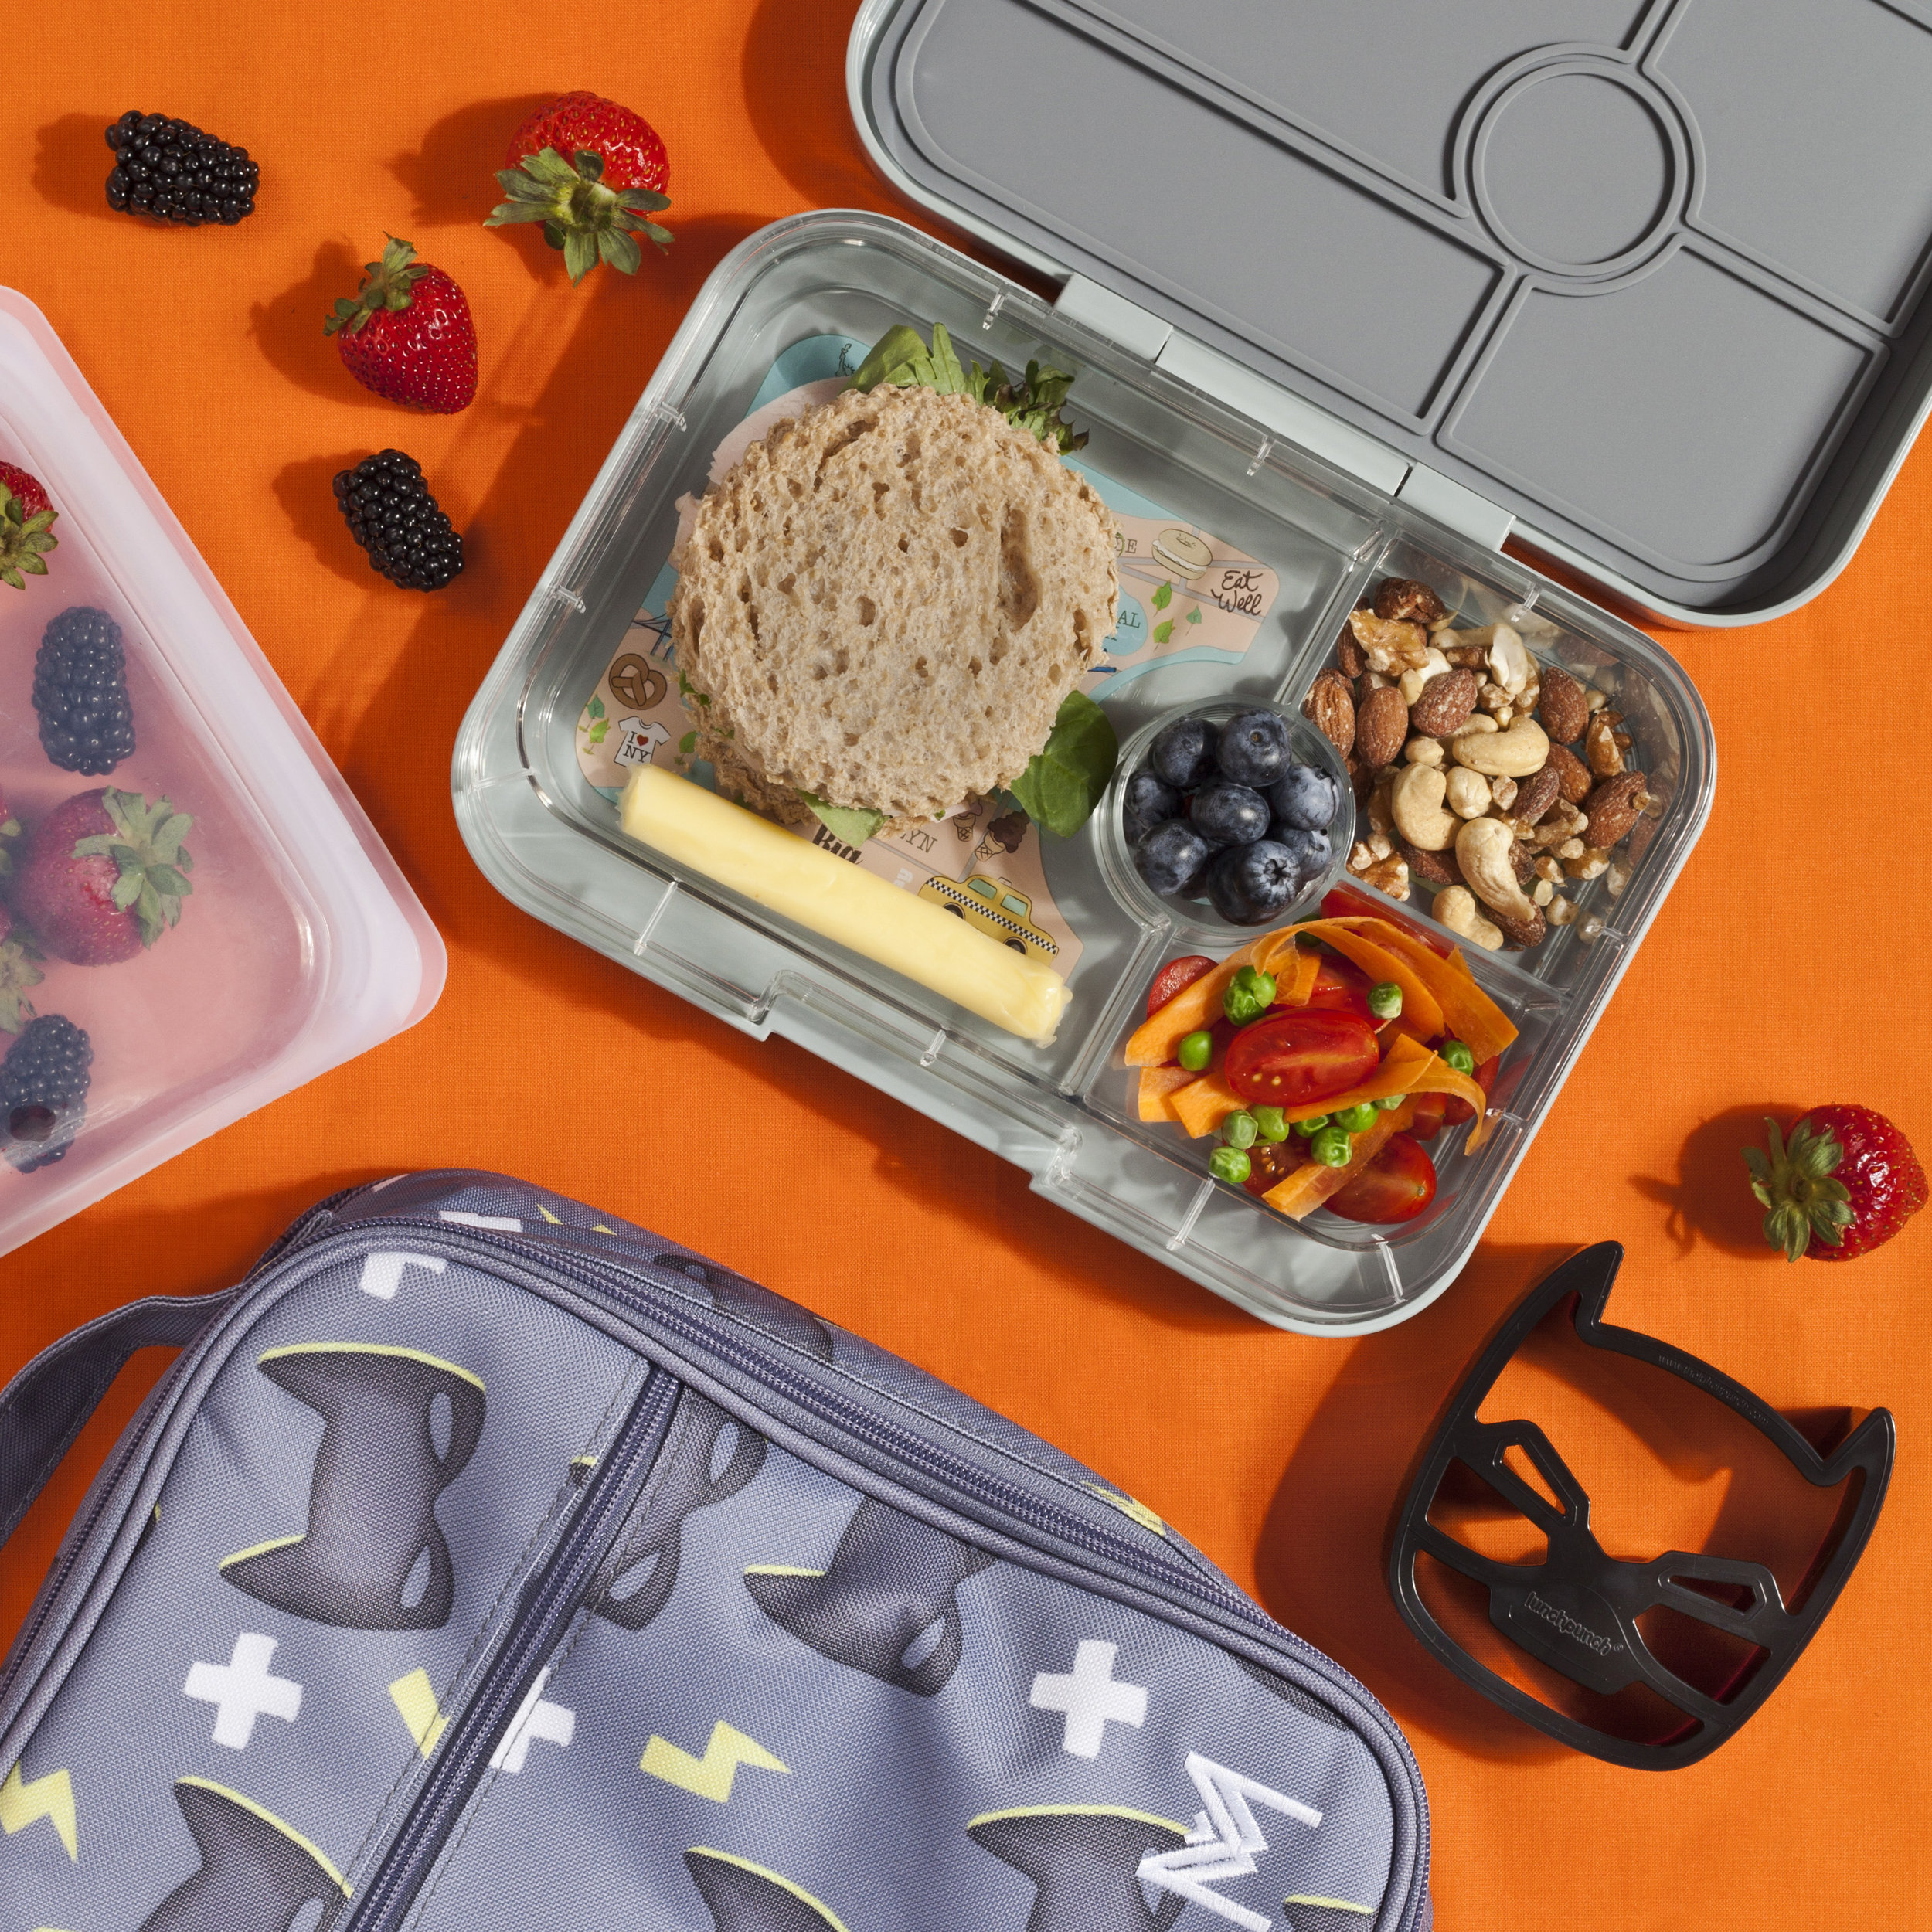 Montii Lunchbag with Yumbox Tapas and LunchPunch Sandwich Cutters